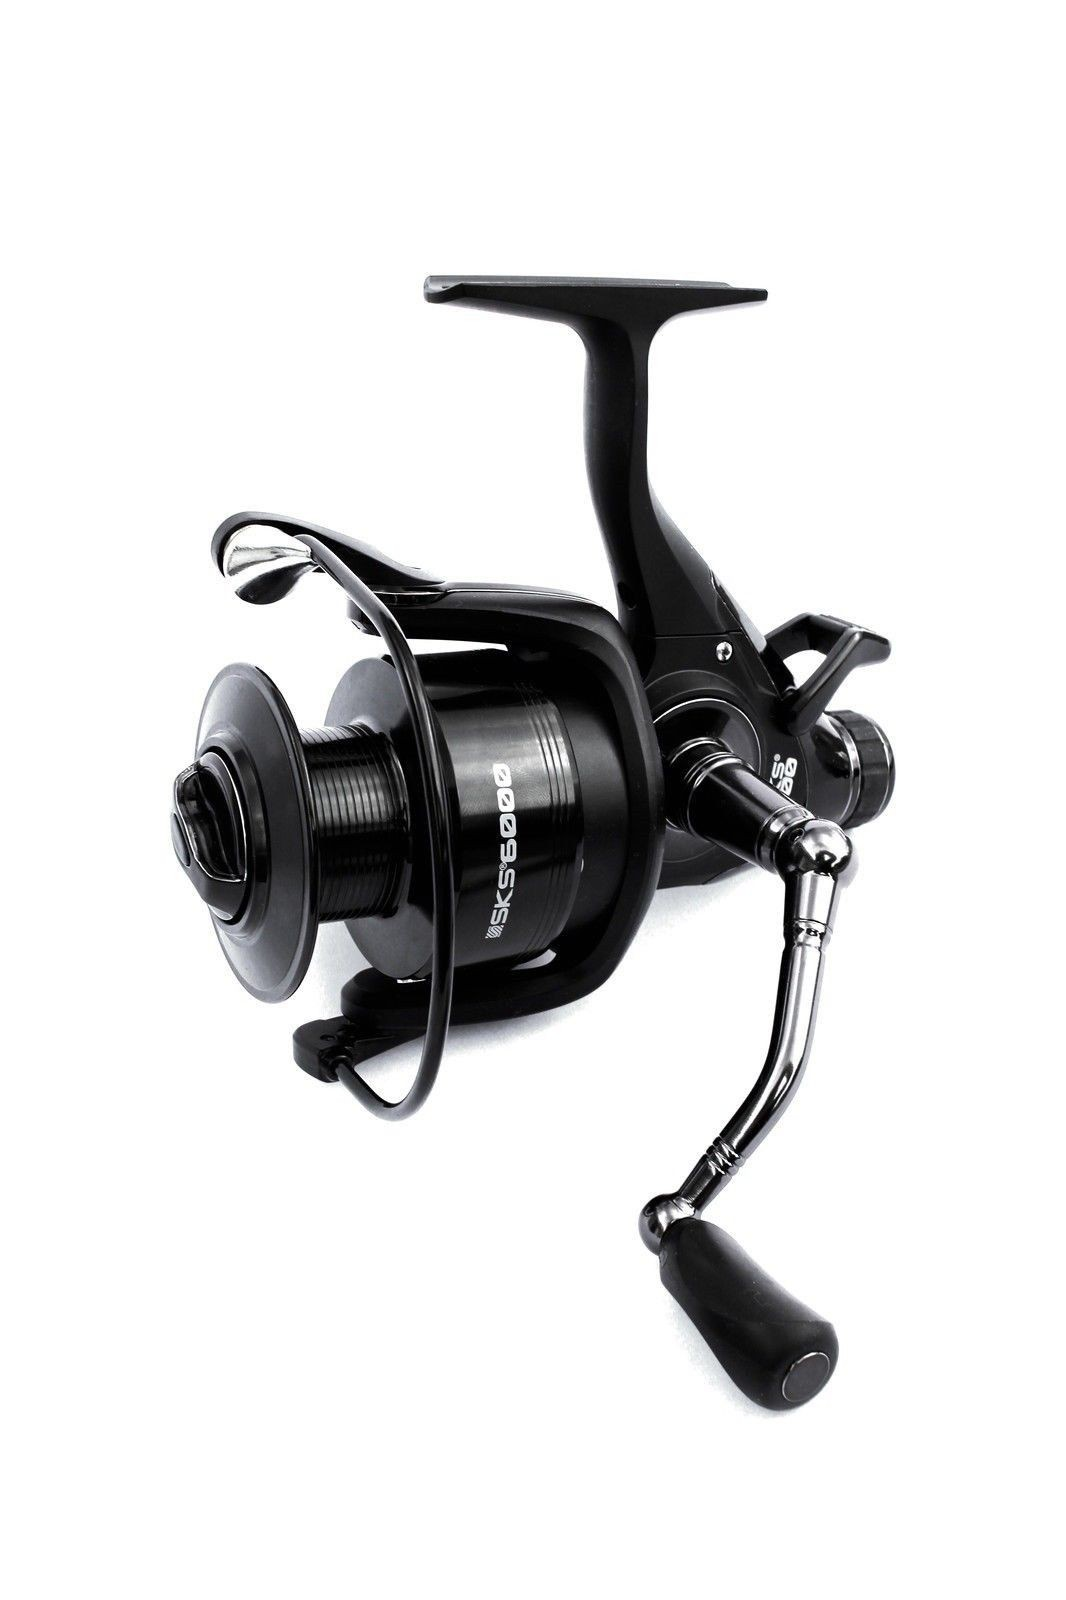 Sonik - FS 6000 Single Handle Black Reel